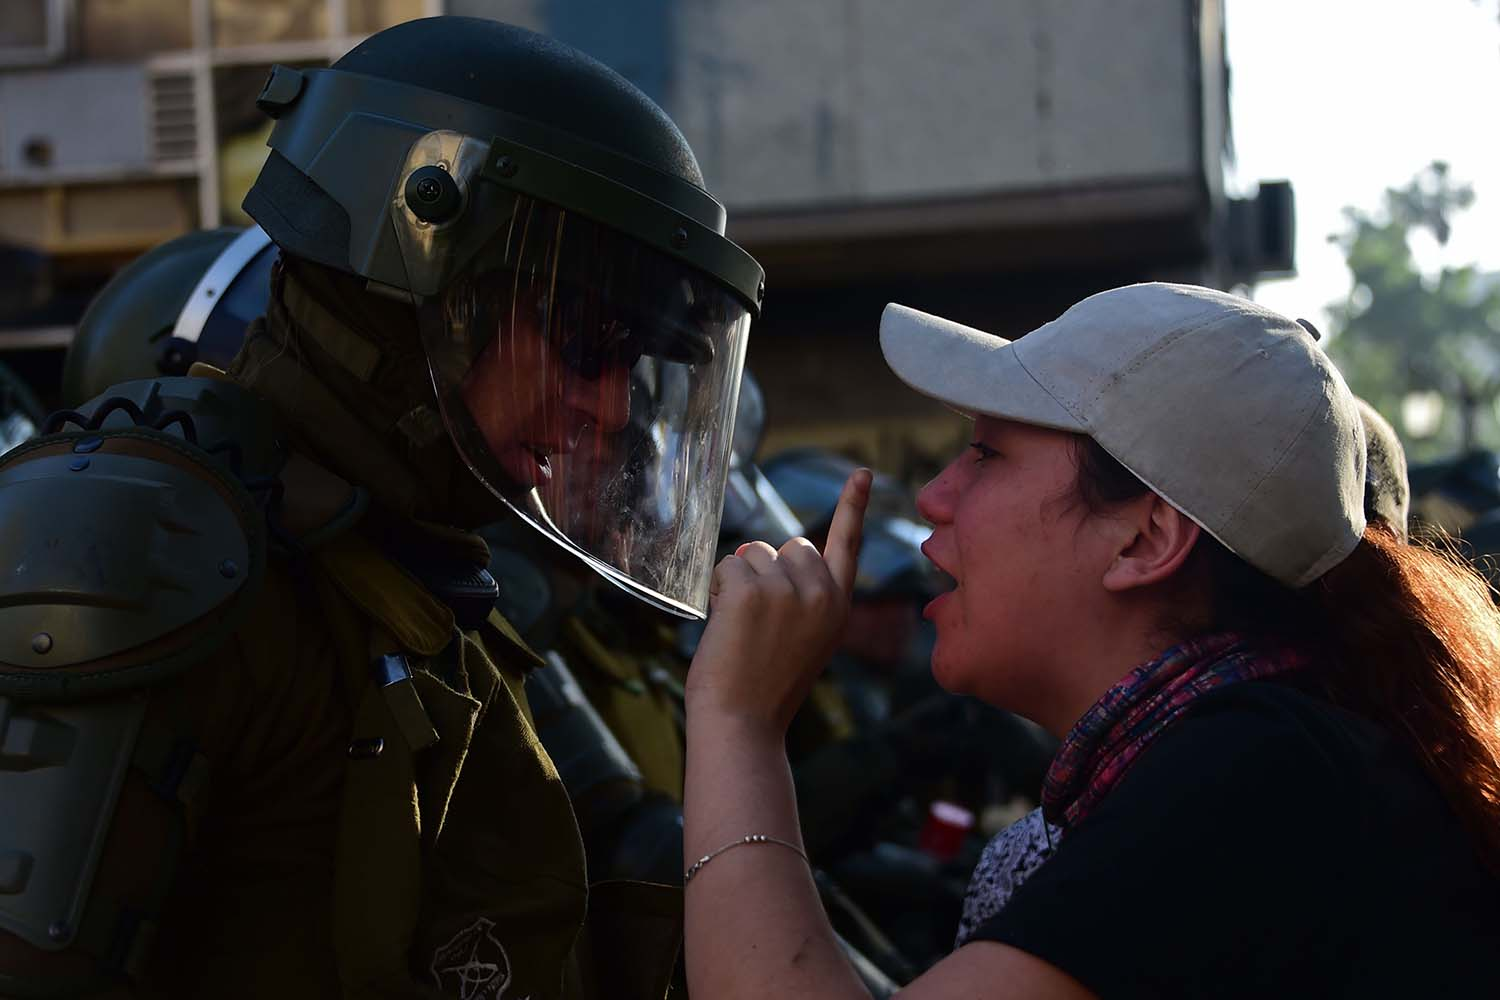 A demonstrator confronts a riot policeman during a protest in Santiago, Chile, on Nov. 13. JOHAN ORDONEZ/AFP via Getty Images